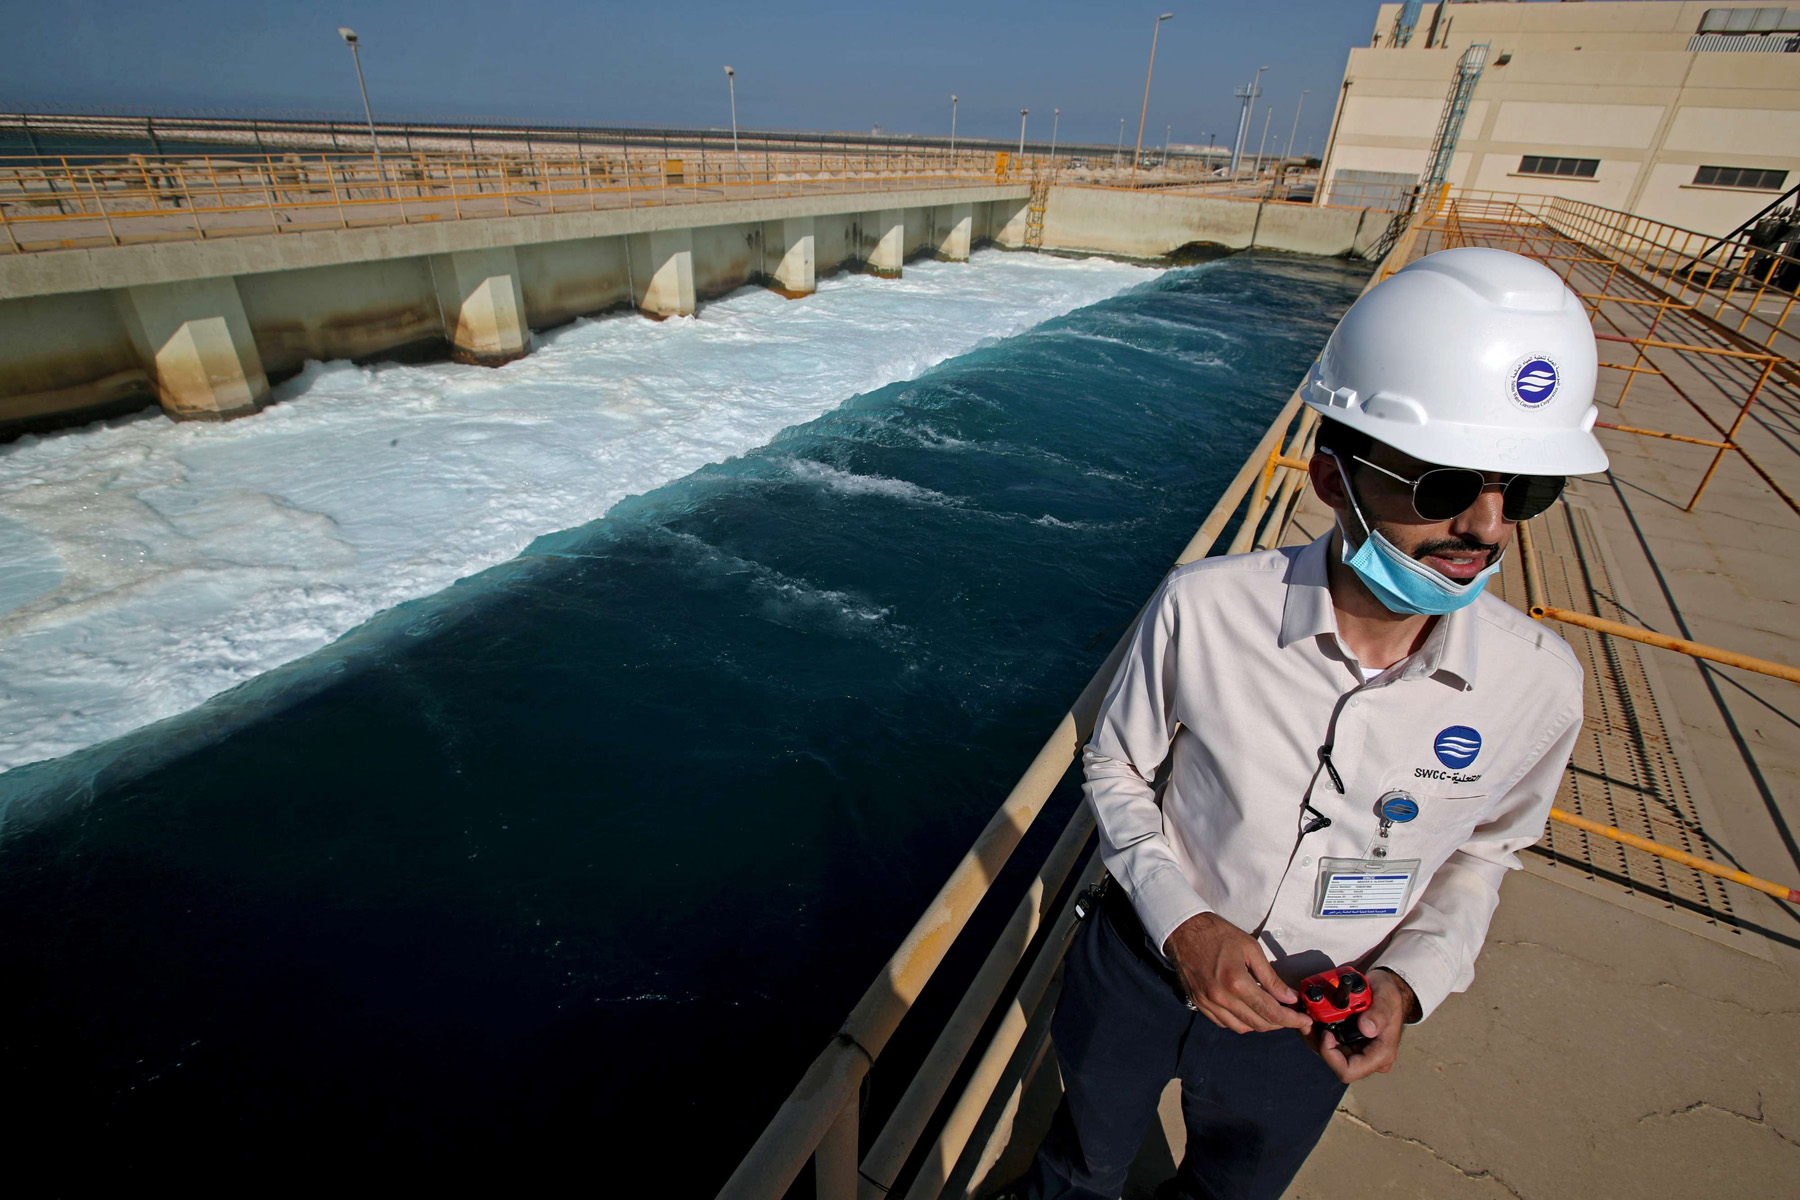 An employee stands next to a waste water collection pool at the Saline Water Conversion Corporation's Ras Al-Khair Power and Desalination Plant at Ras Al-Khair, Saudi Arabia. REUTERS